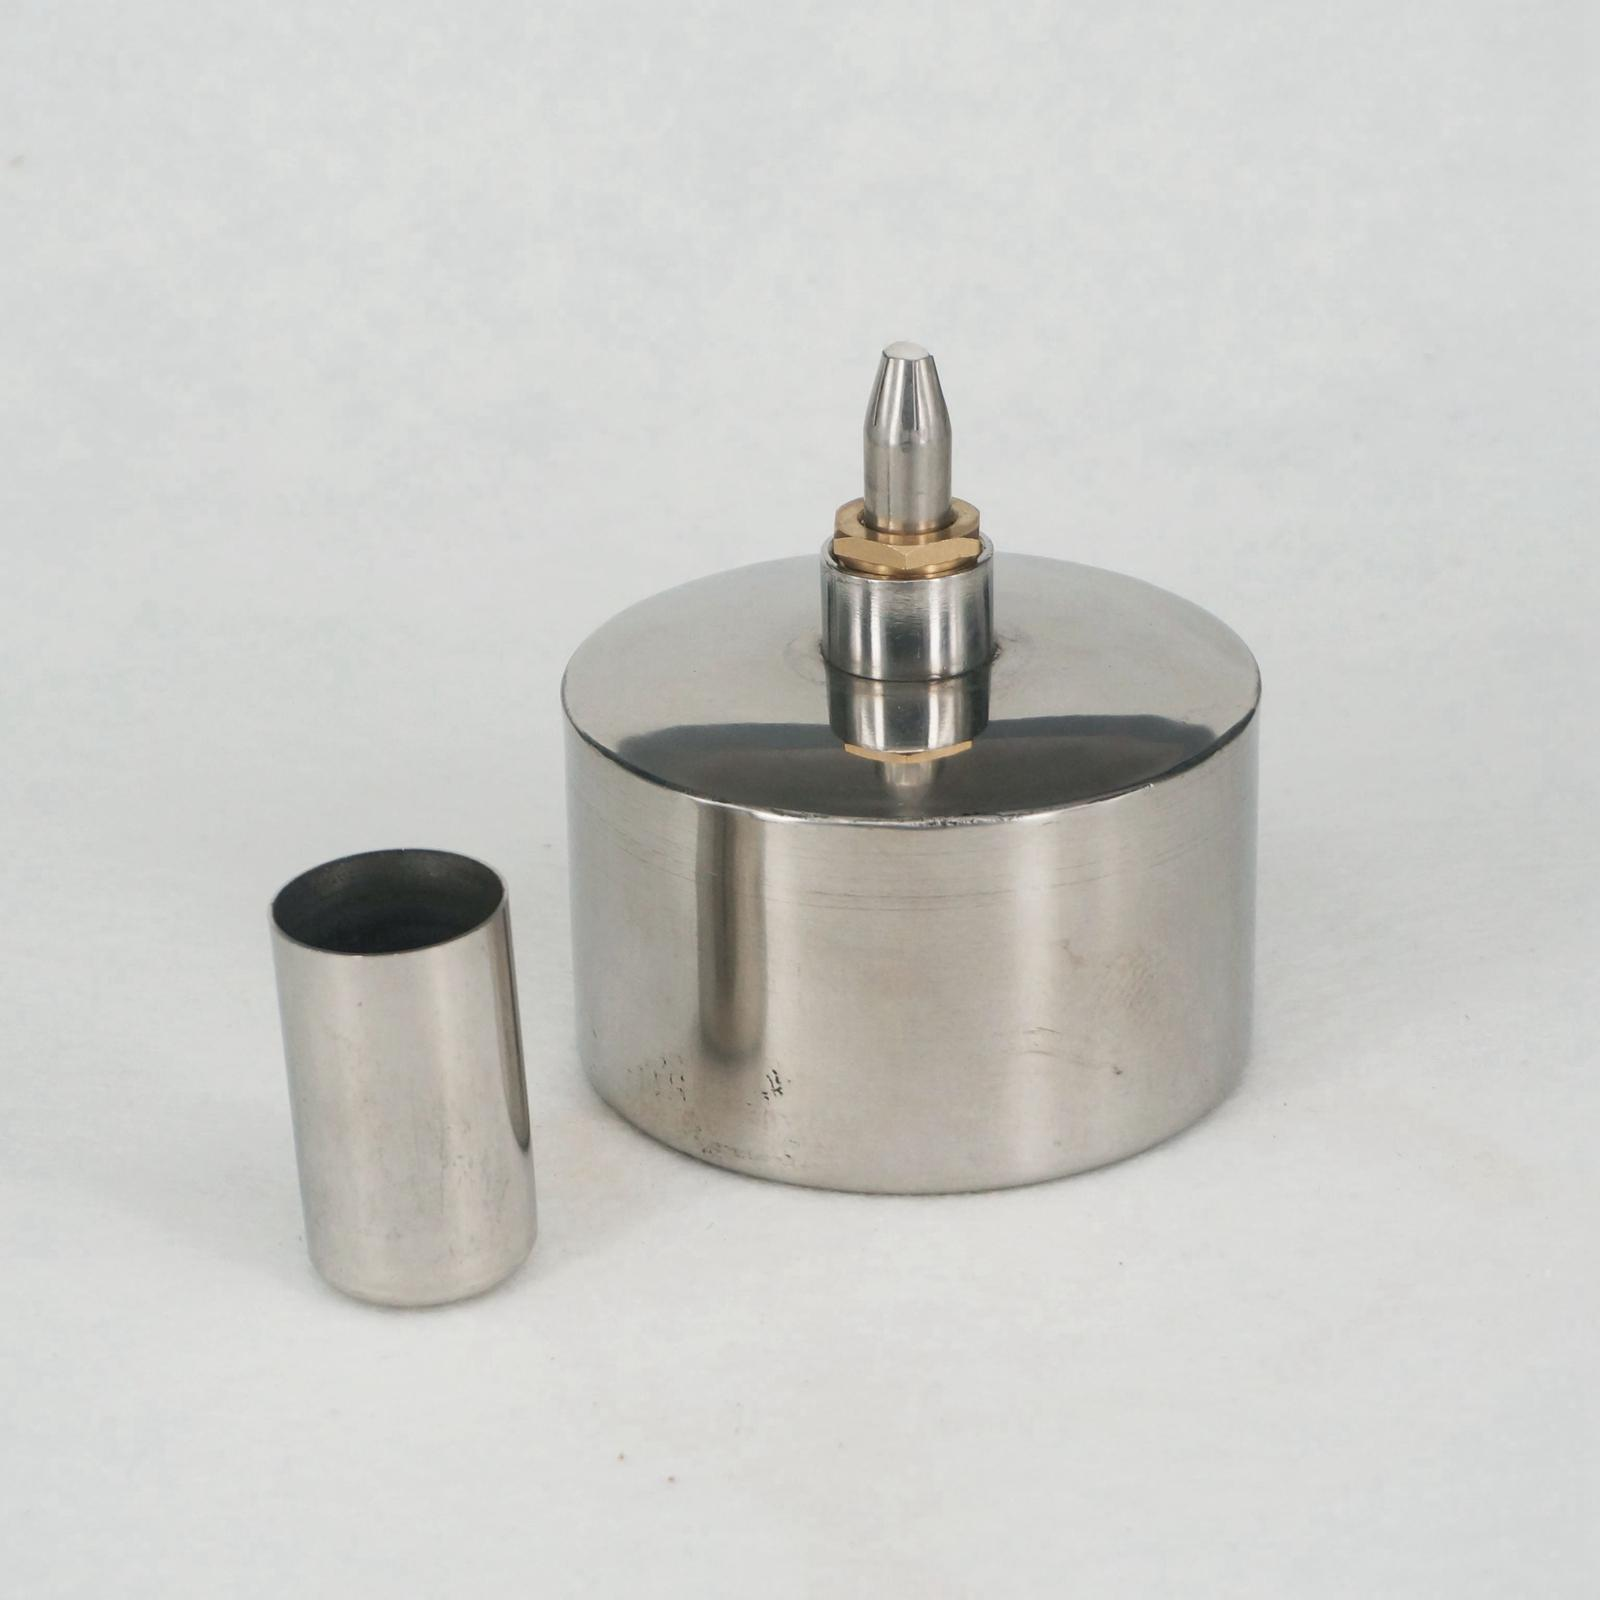 400ml 304 Stainless Steel Alcohol Burner Spirit Lamp Laboratory with wick for Dental Jeweller Cupping Acupuncture400ml 304 Stainless Steel Alcohol Burner Spirit Lamp Laboratory with wick for Dental Jeweller Cupping Acupuncture